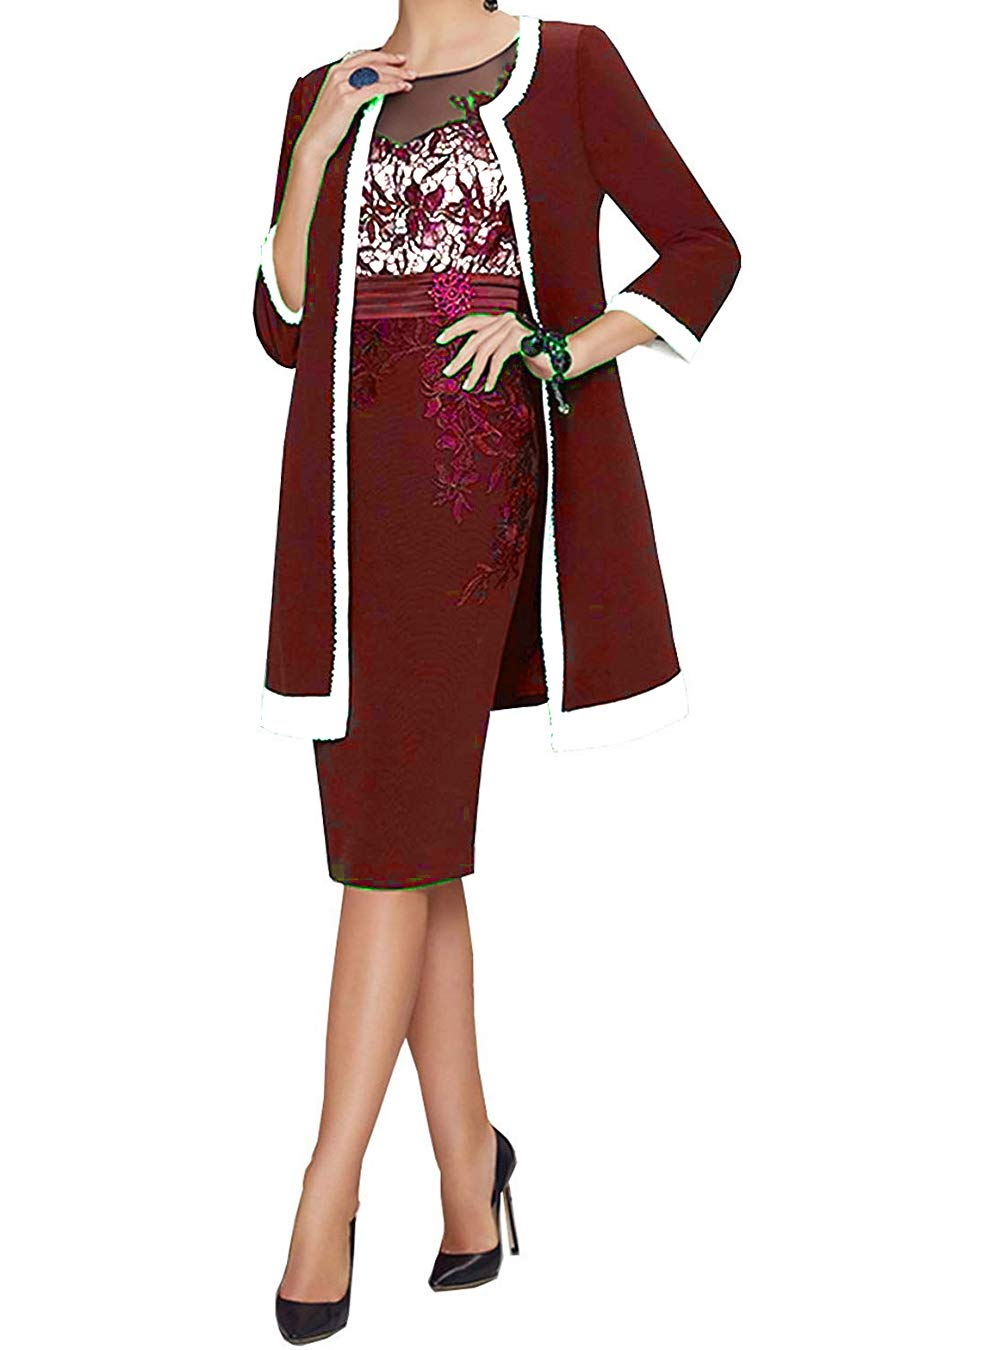 0a928d27b9 UGLY 3 Styles Knee Length Mother The Bride Dresses Two Pieces Mother Dress  Wedding UG080 A-Burgundy Custom